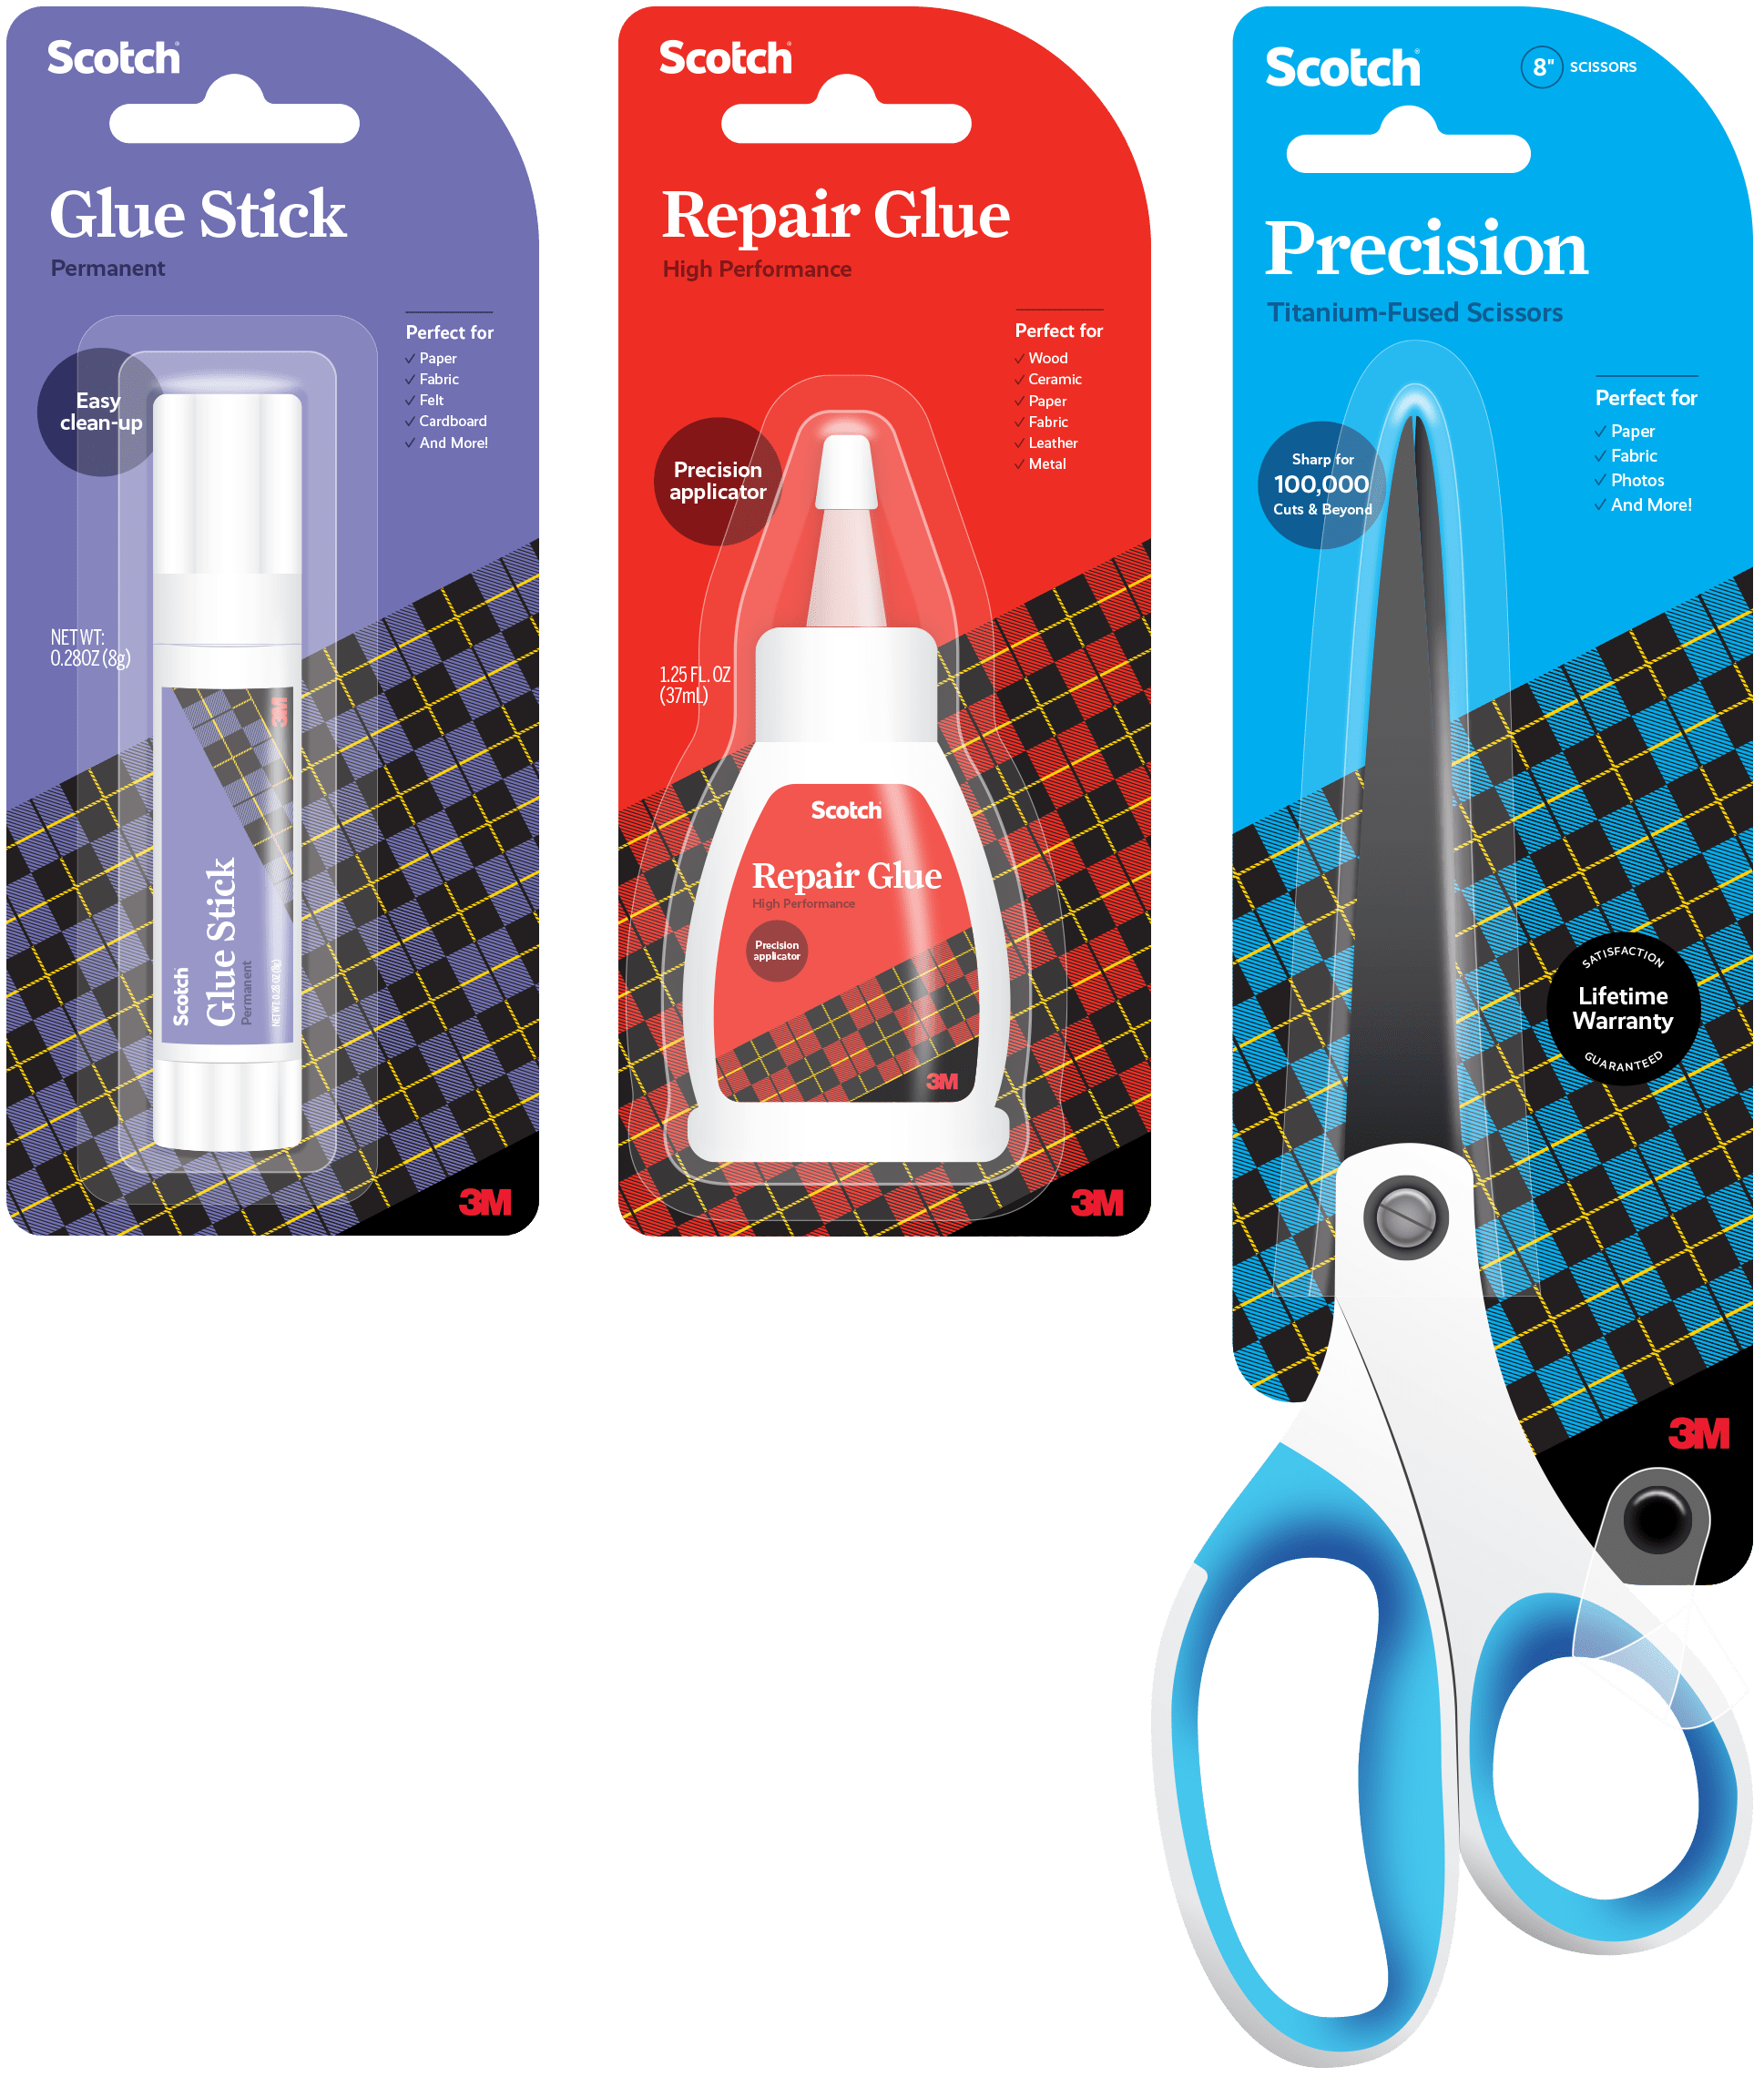 The cohesively redesigned glue and scissors packaging for Scotch